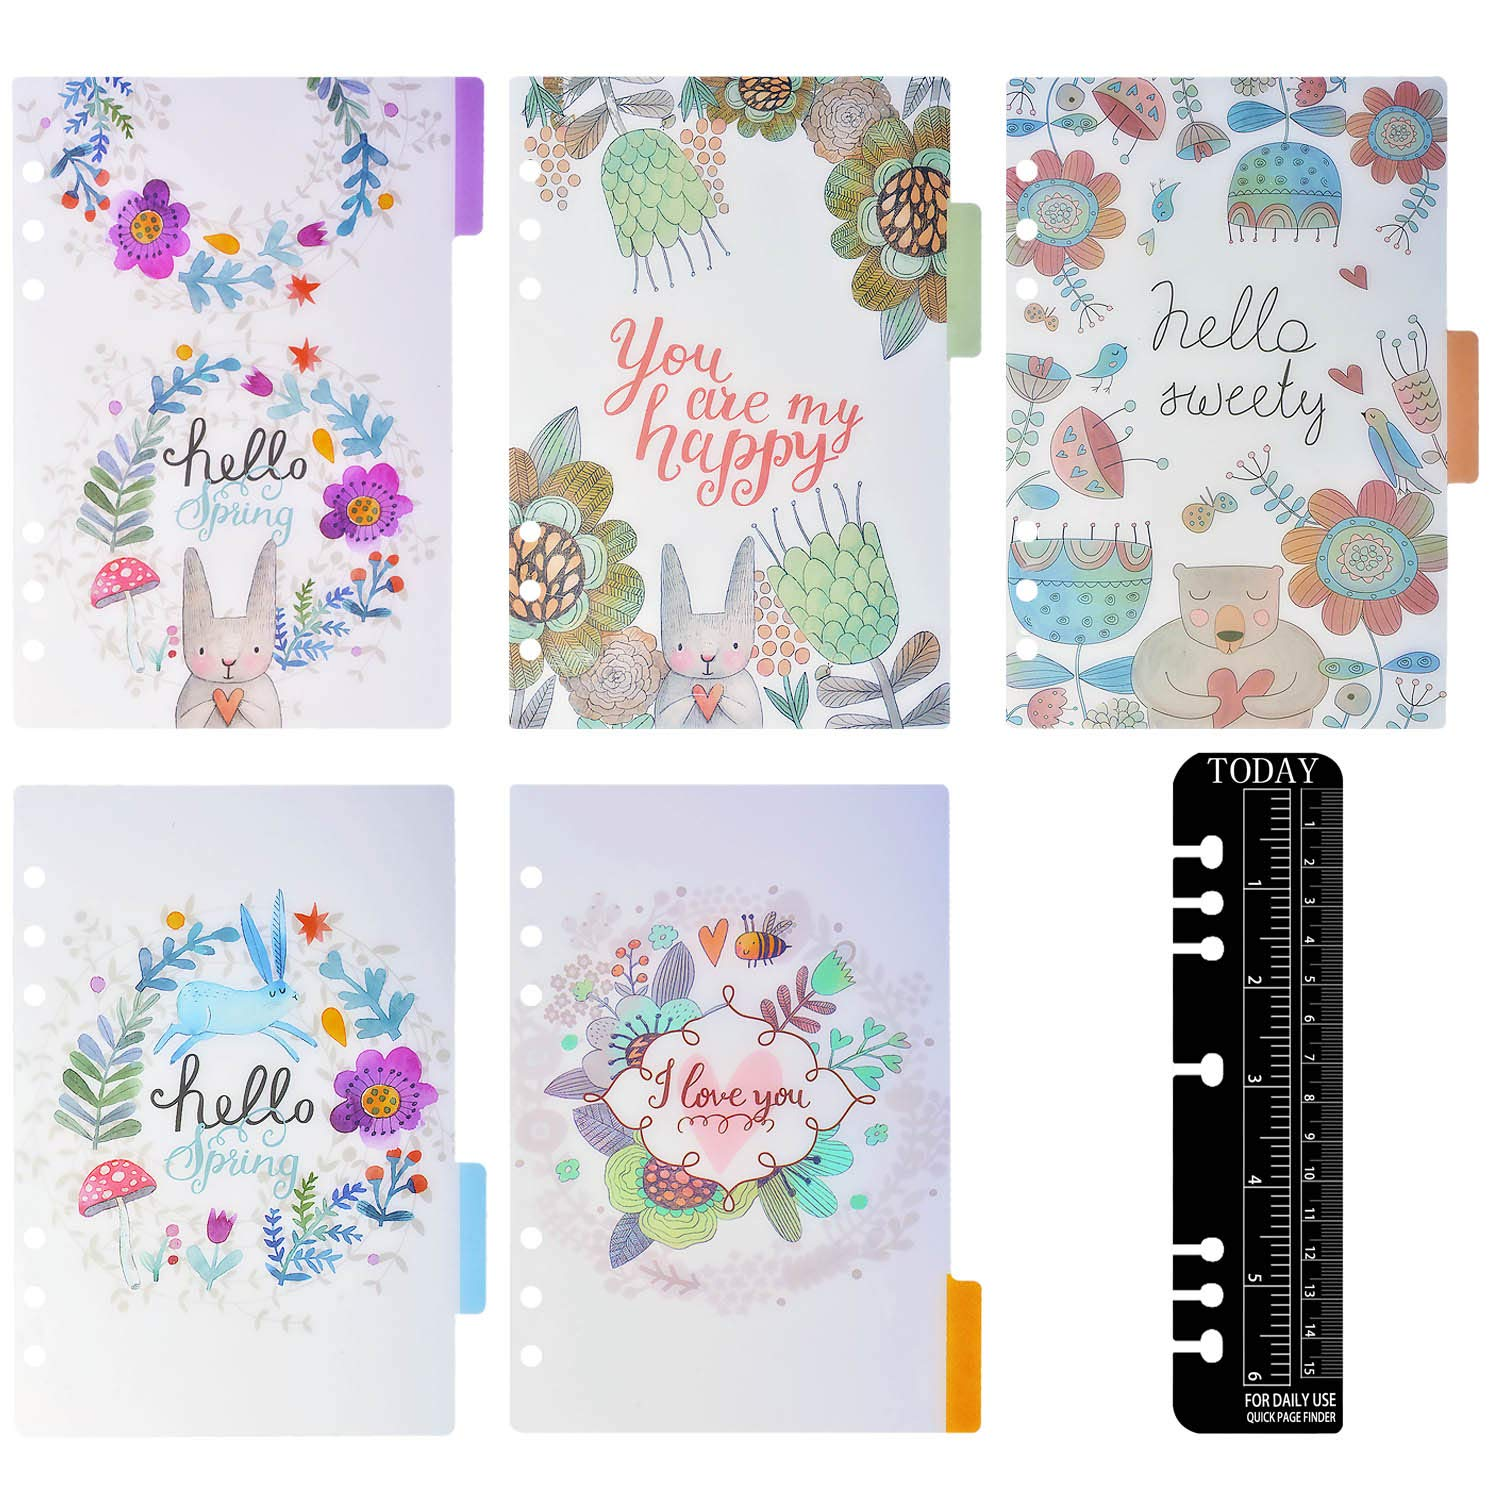 Larcenciel A6 Dividers Inserable Pagina Tab Card, 1 Set 5 Pz Translucent PP 6-Ring Binder, Pagina categoria Day Planner Filofax Notebook / Diario di viaggio / Planner w / Righello (Farfalla di uccello fiore)